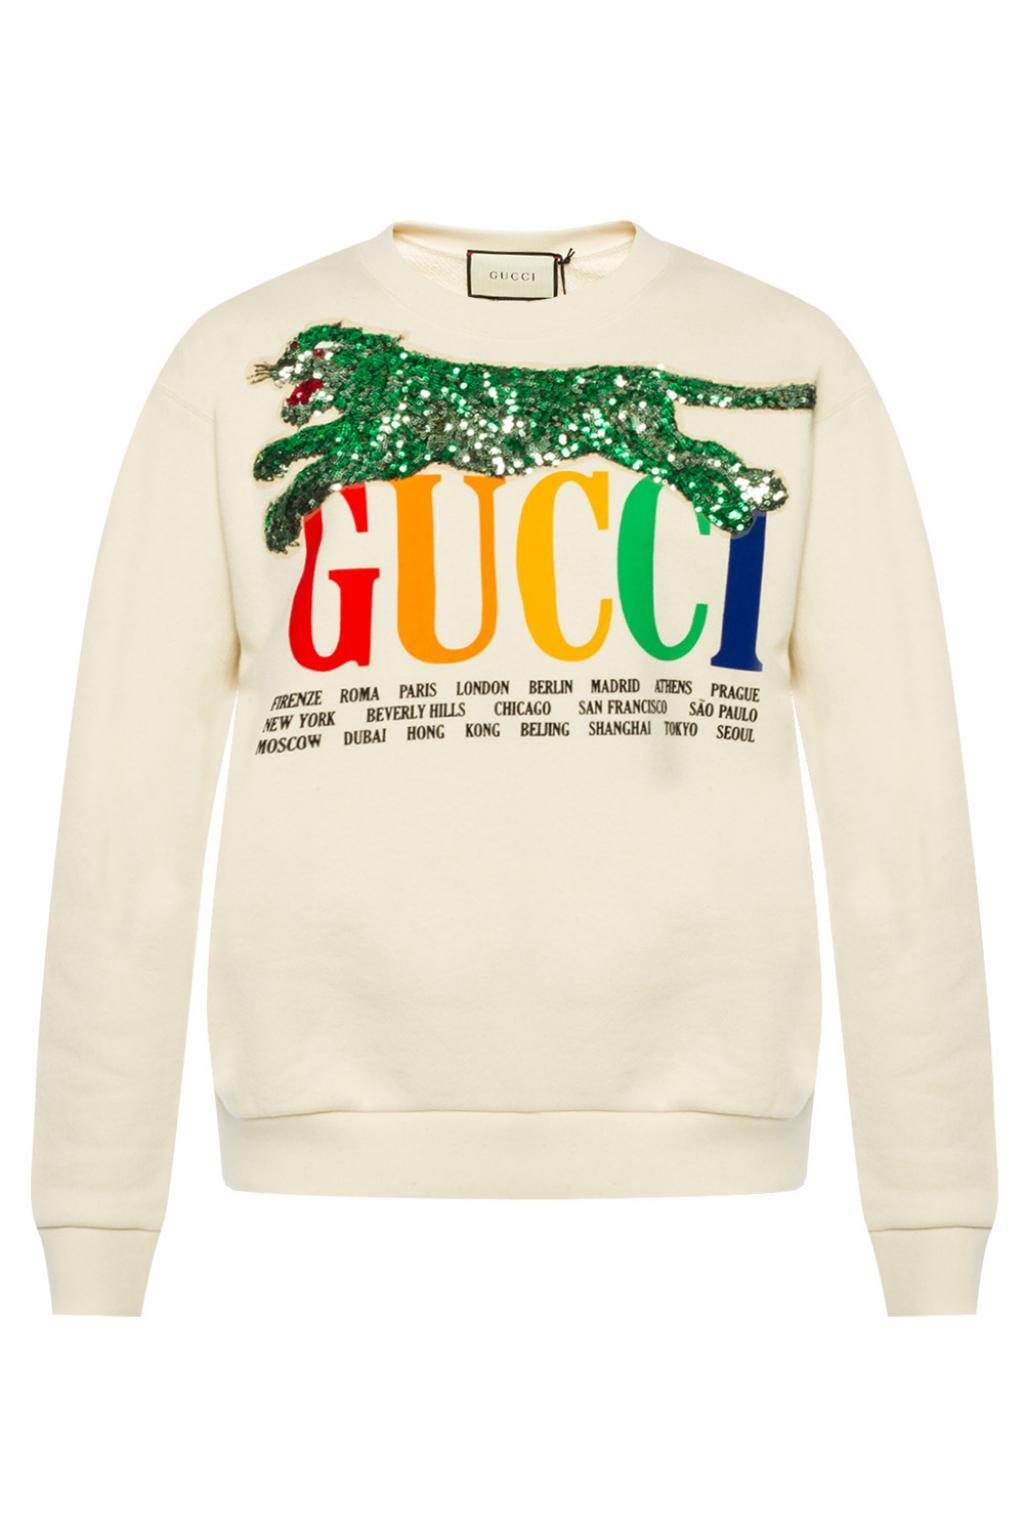 d719a8dd23 Lyst - Gucci Oversized Embellished Printed Cotton-terry Sweatshirt ...